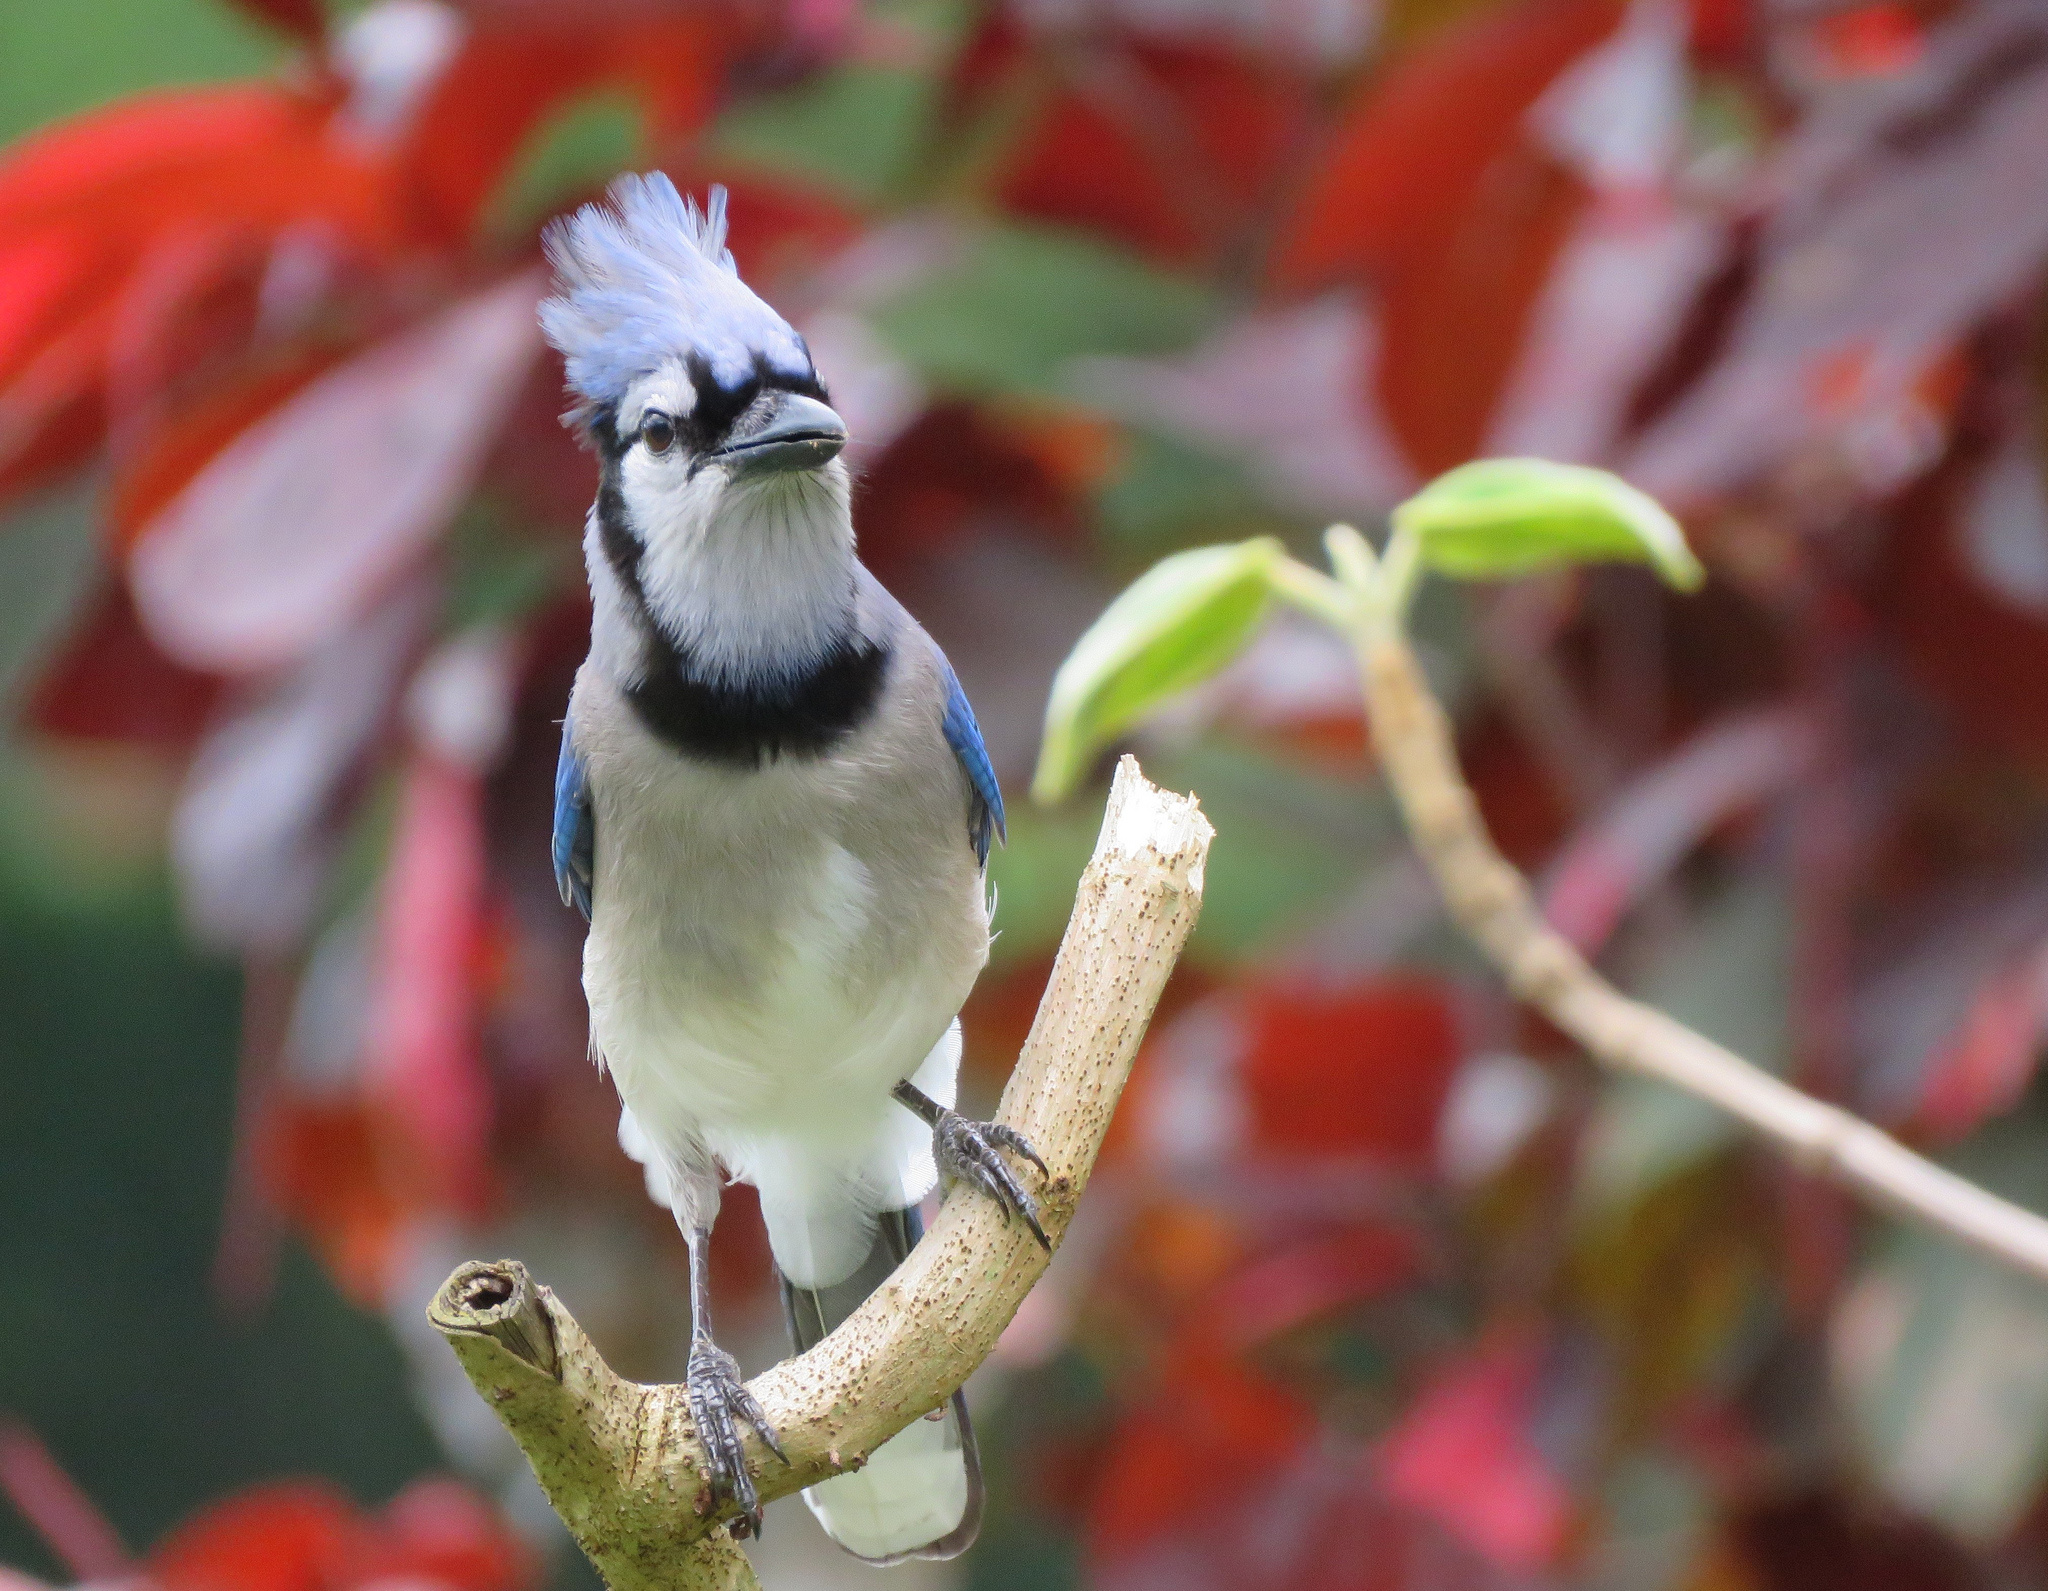 Free download high resolution image - free image free photo free stock image public domain picture -A Blue Jay perched on tree branch